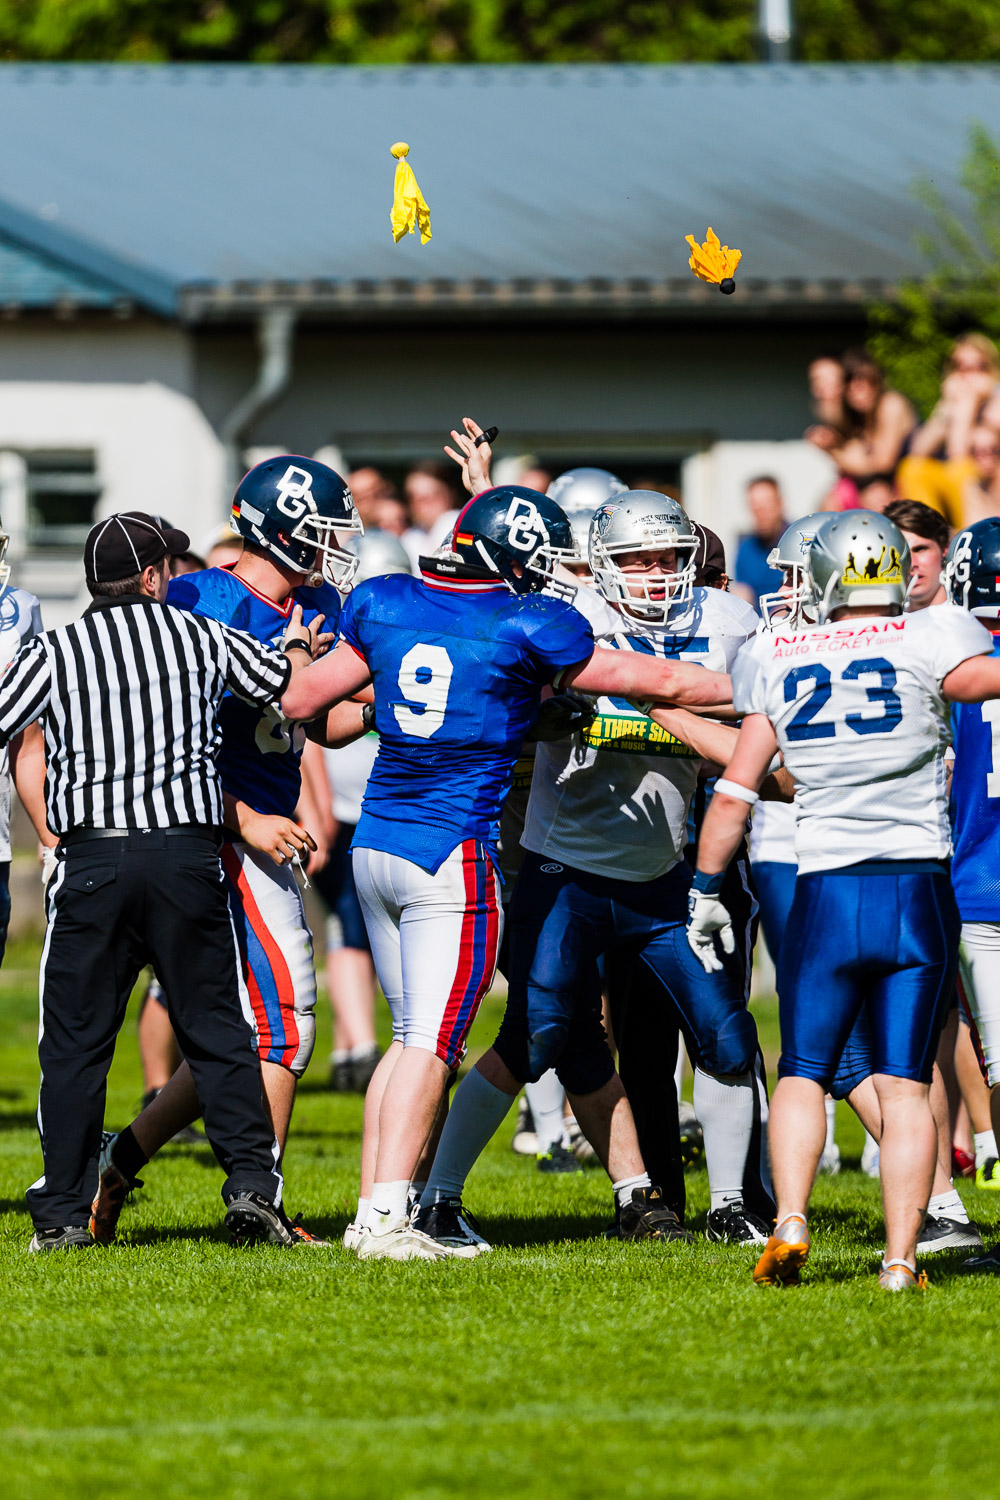 Reginalliga NRW 2013 - Bochum Cadets vs. Dortmund Giants